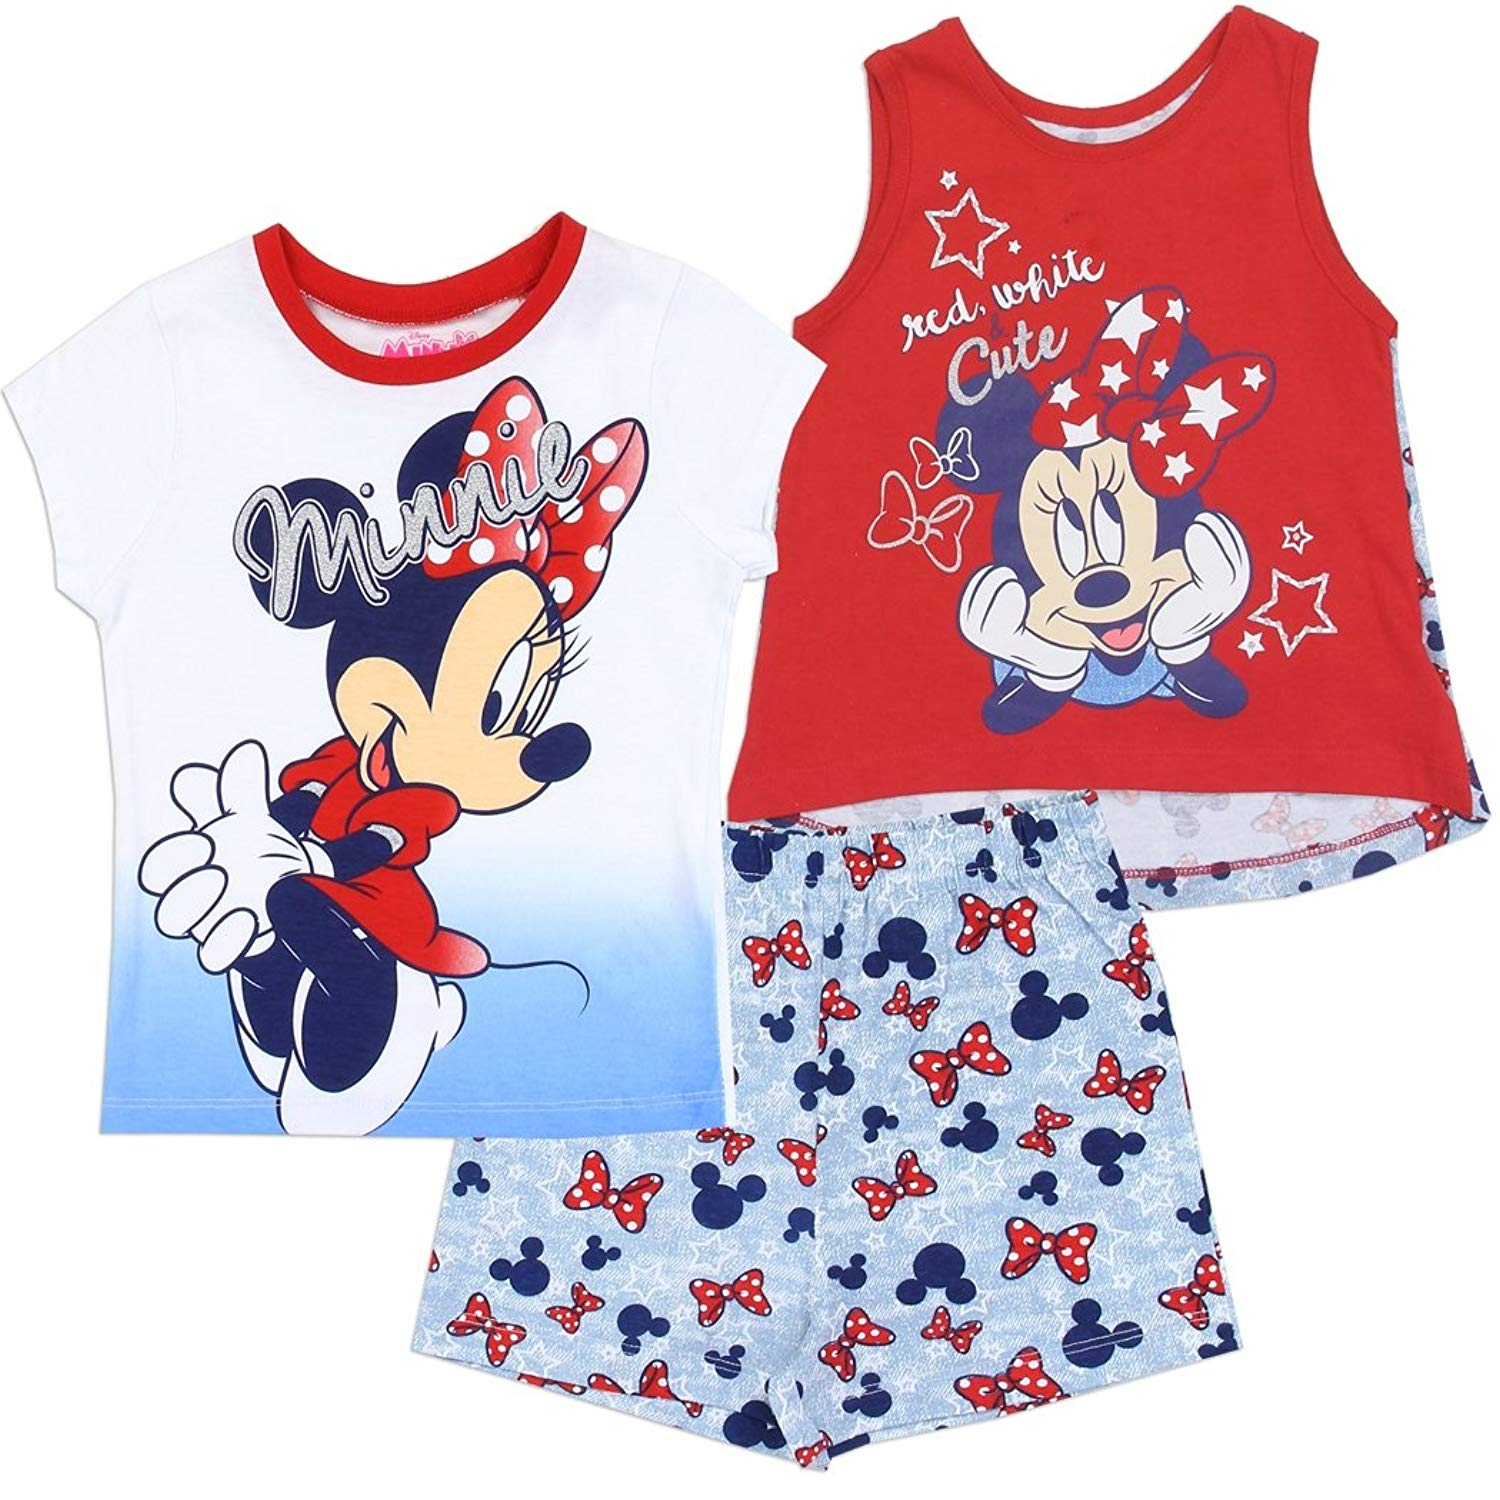 Minnie Mouse Girls 3-Piece Set Includes Tank Top, T-Shirt, and Shorts